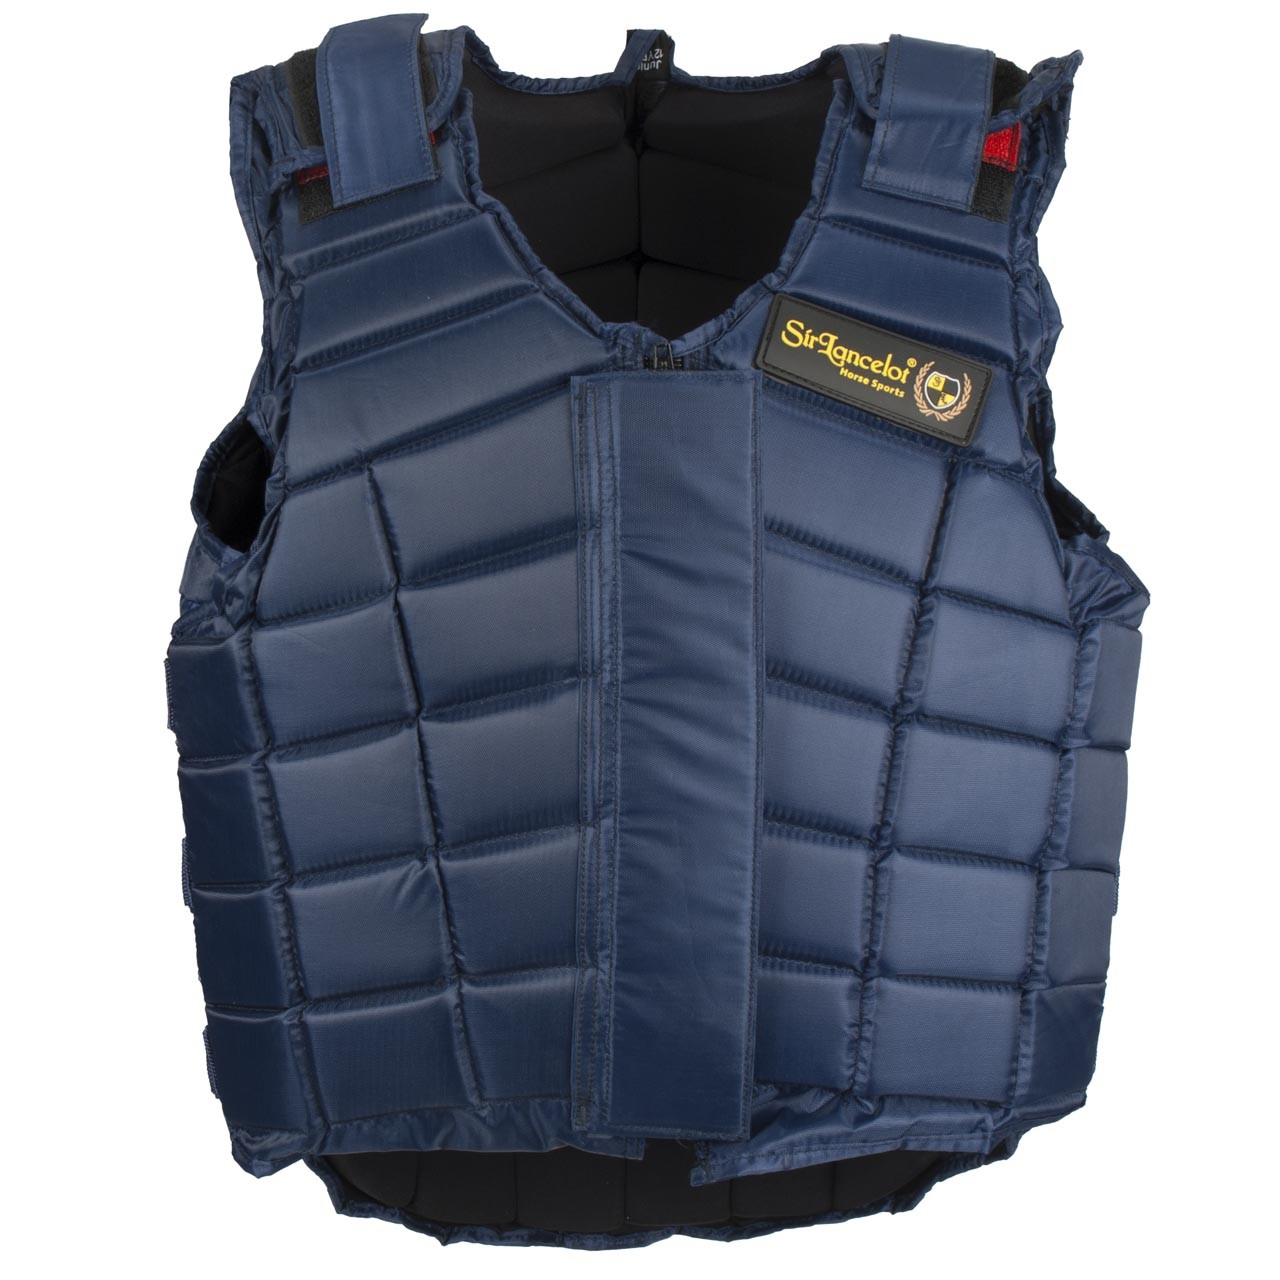 Sir Lancelot 8 Point kinder Bodyprotector donkerblauw maat:14